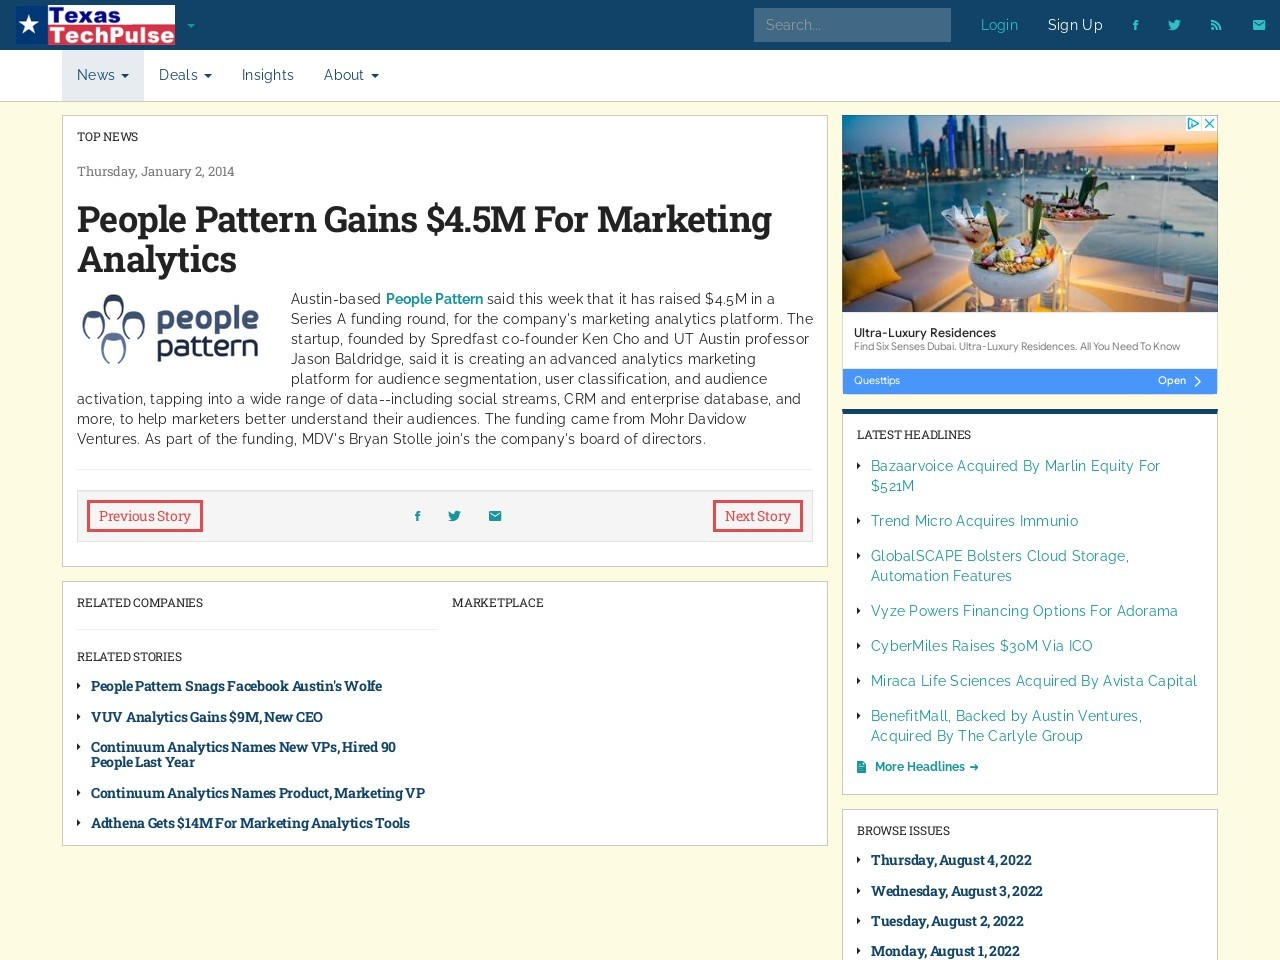 People Pattern Gains $4.5M For Marketing Analytics …